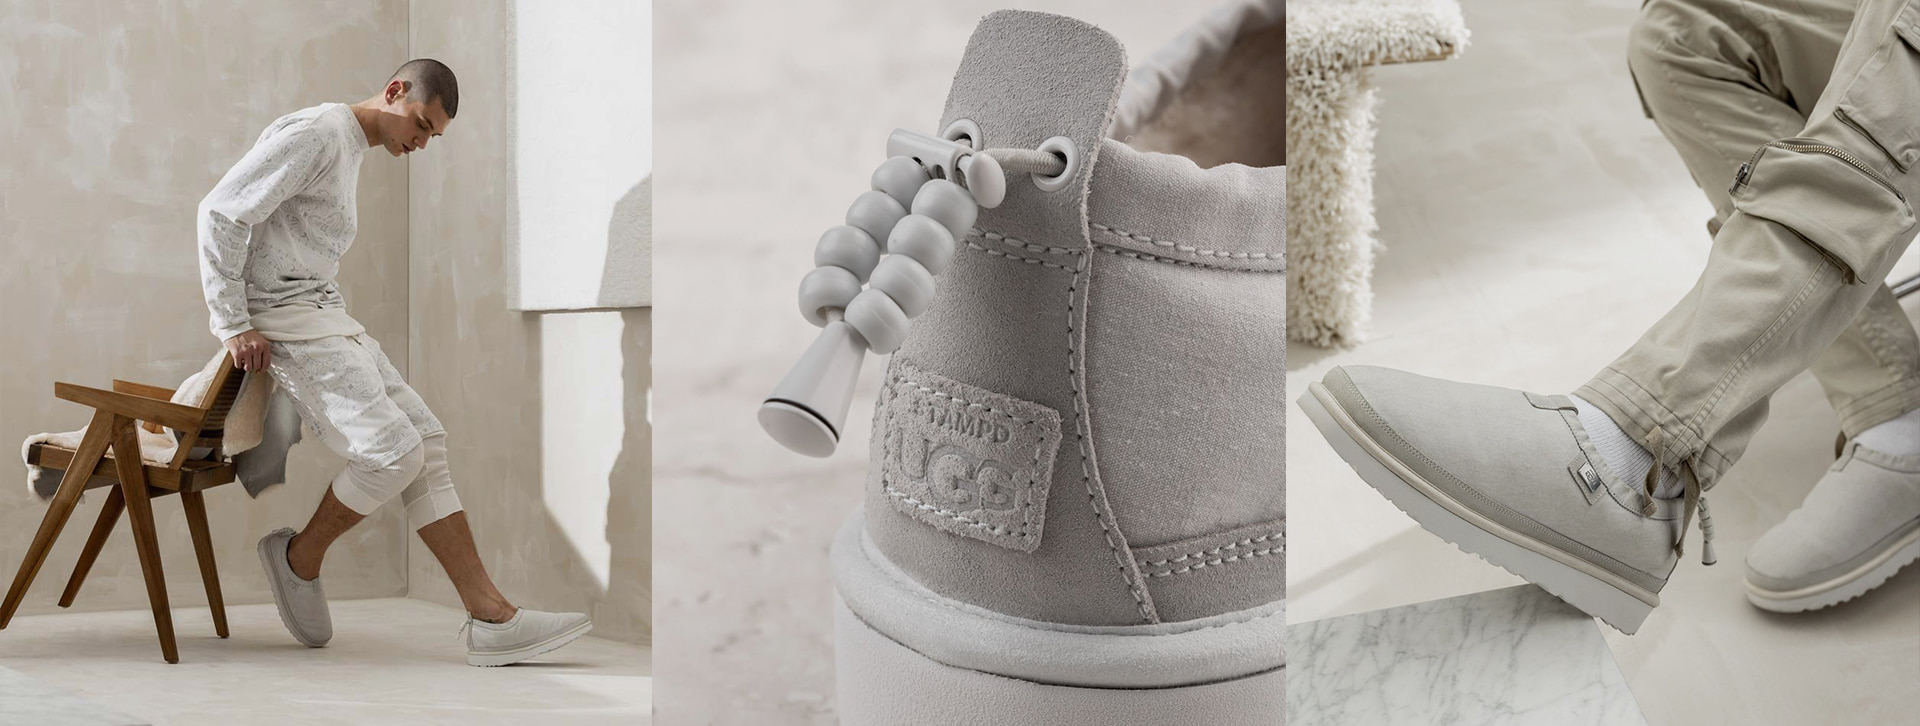 Ultimate suede quarantine shoes by UGG x Stampd ☁️ get in full toughness & comfort.